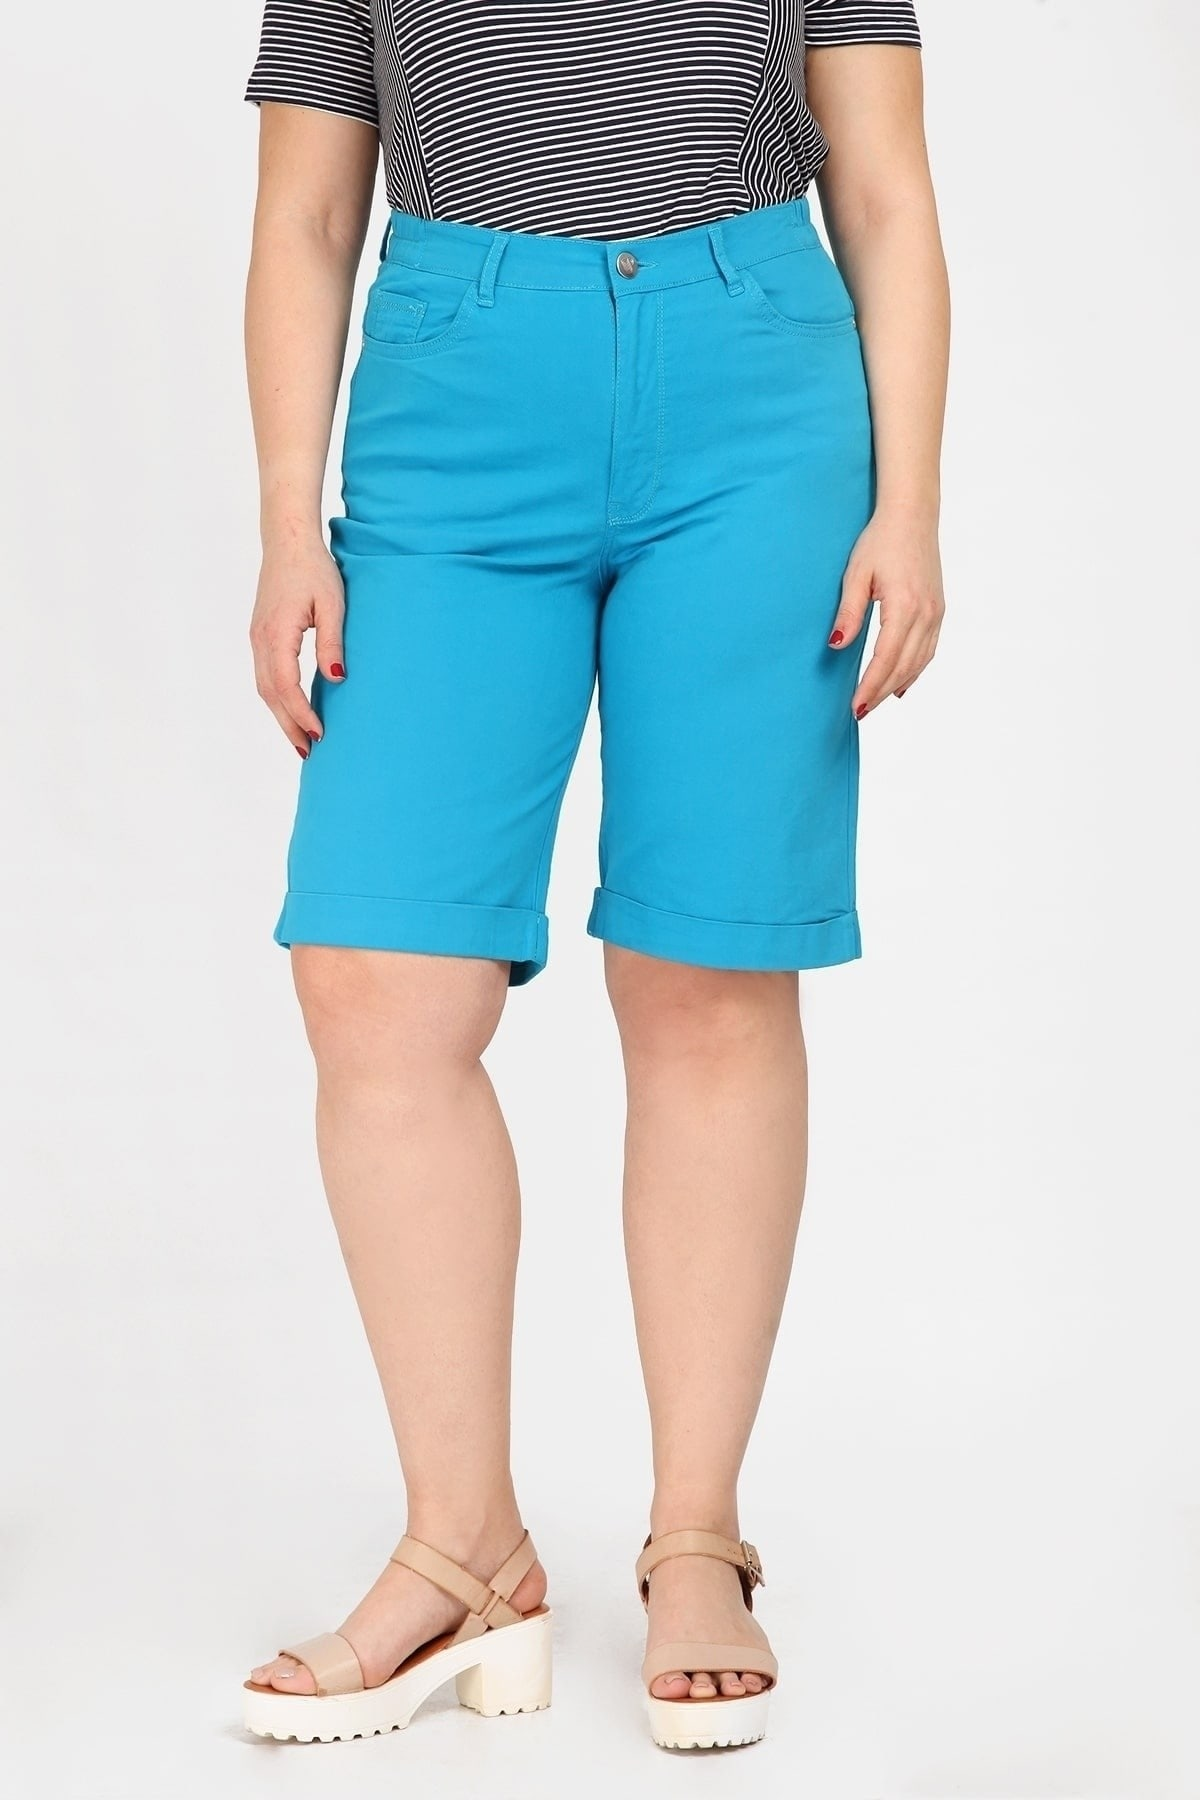 Cotton bermuda shorts with turn ups and lurex details